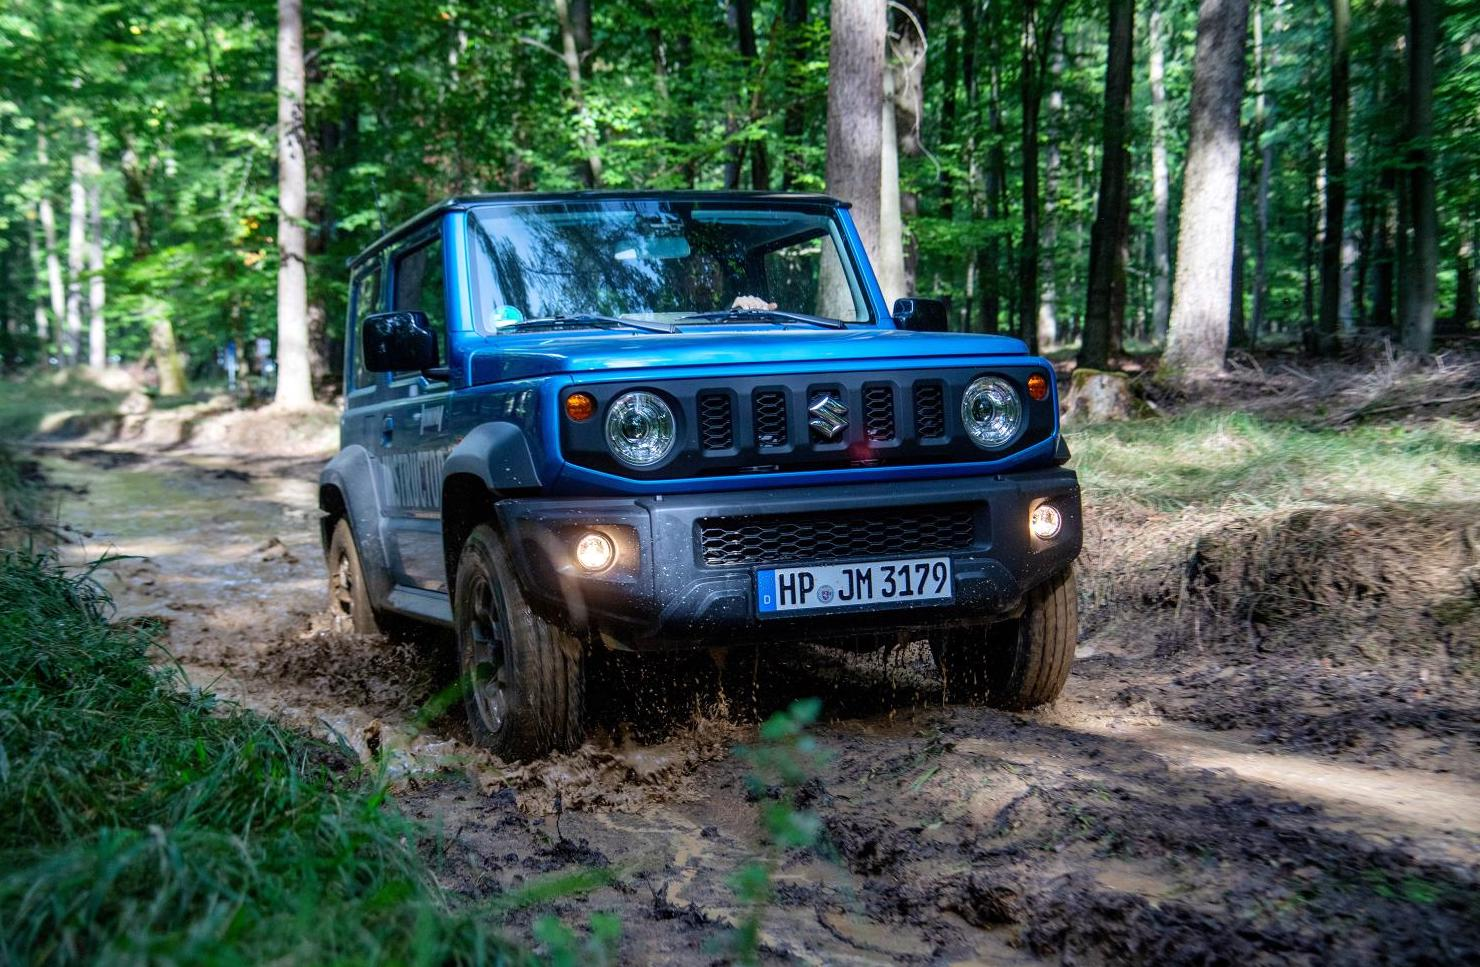 The Jimny is an affordable off-roader